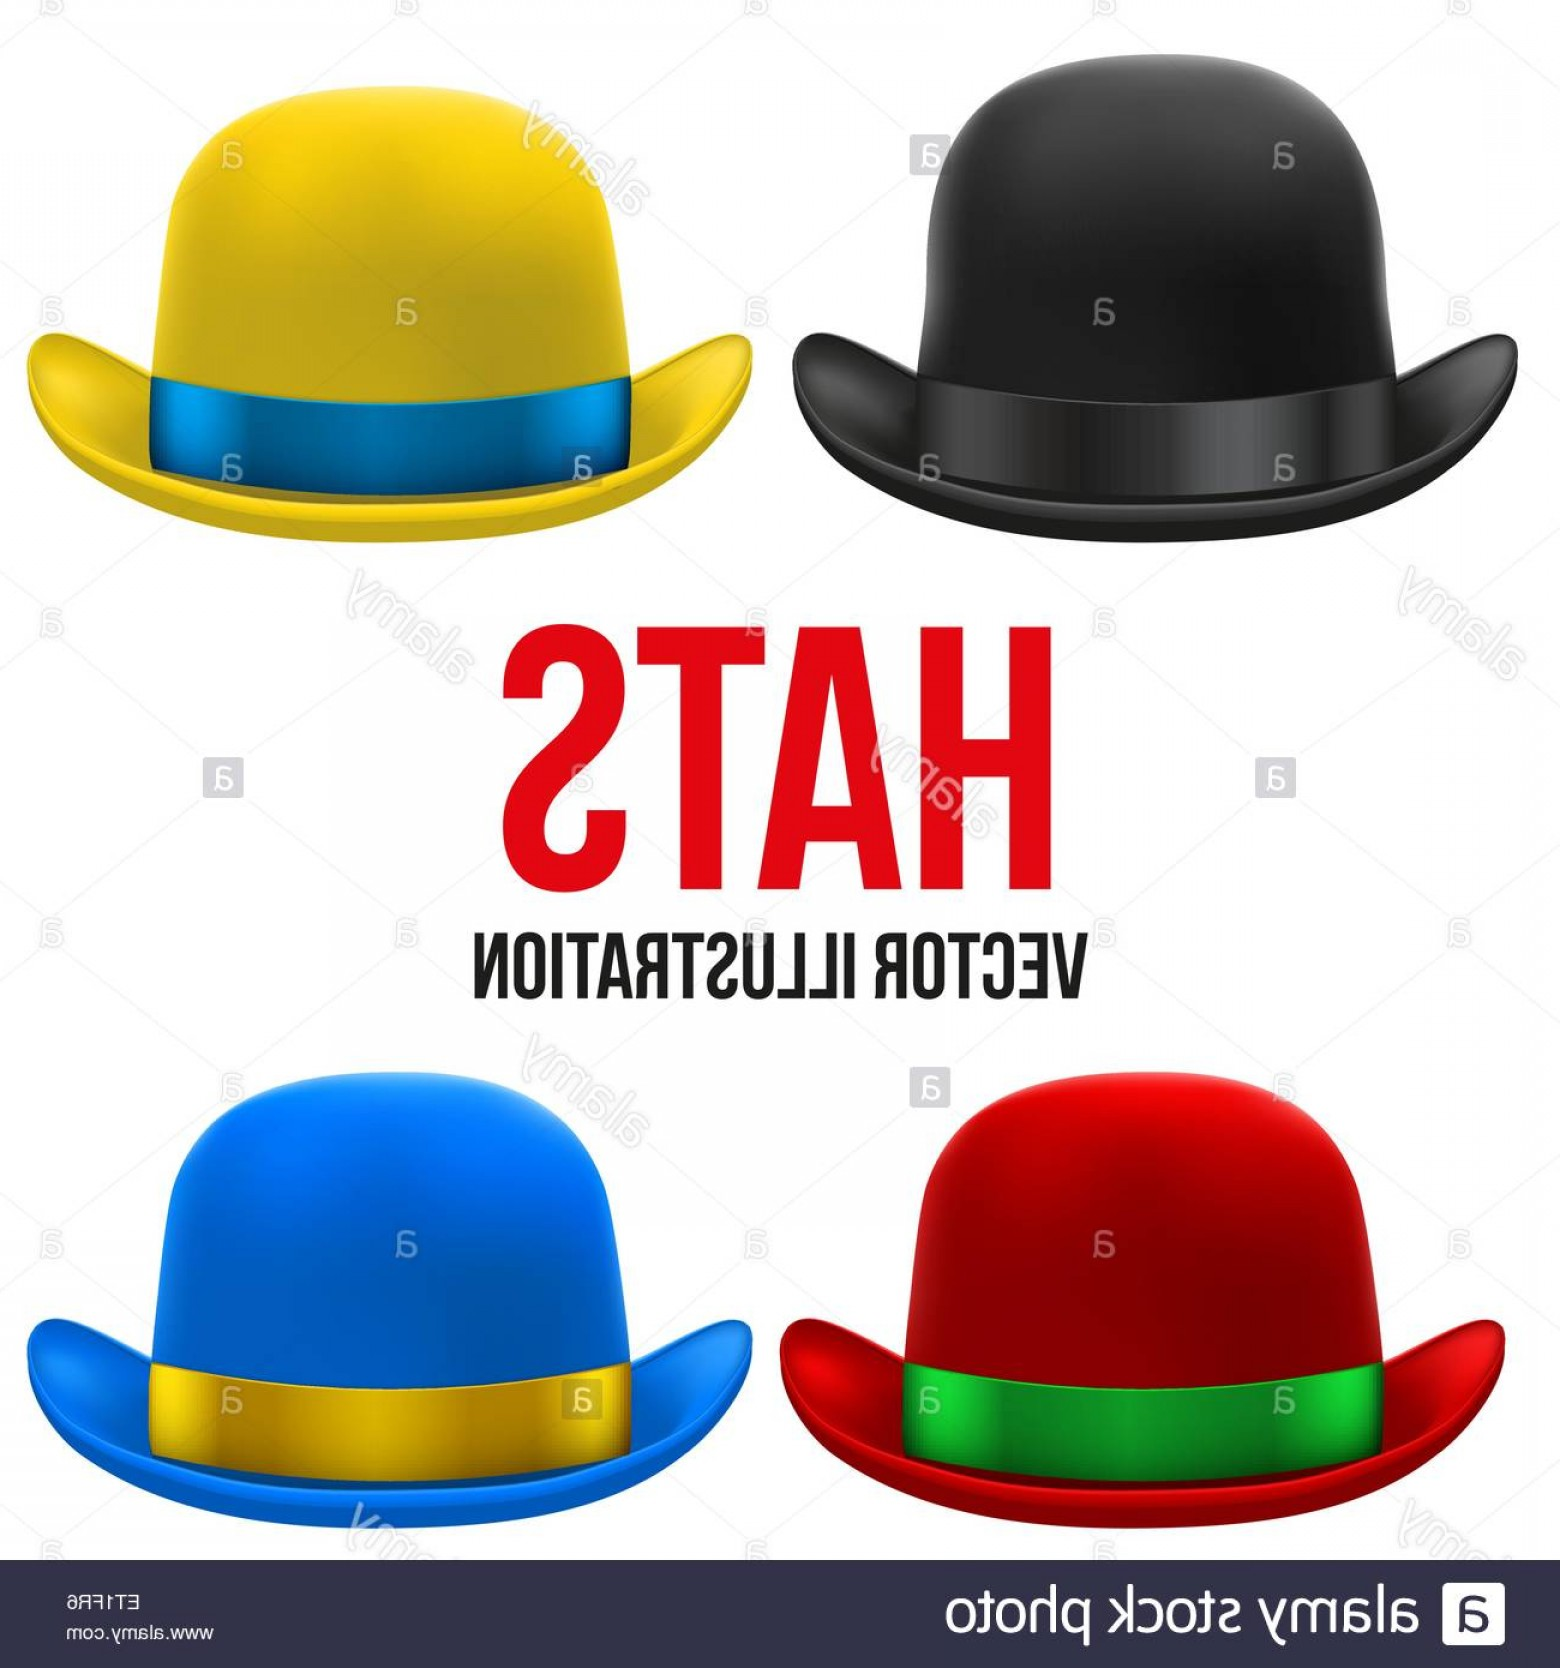 Bowler Hat Vector: Stock Photo Set Of Colorful Bowler Hats Vector Illustration